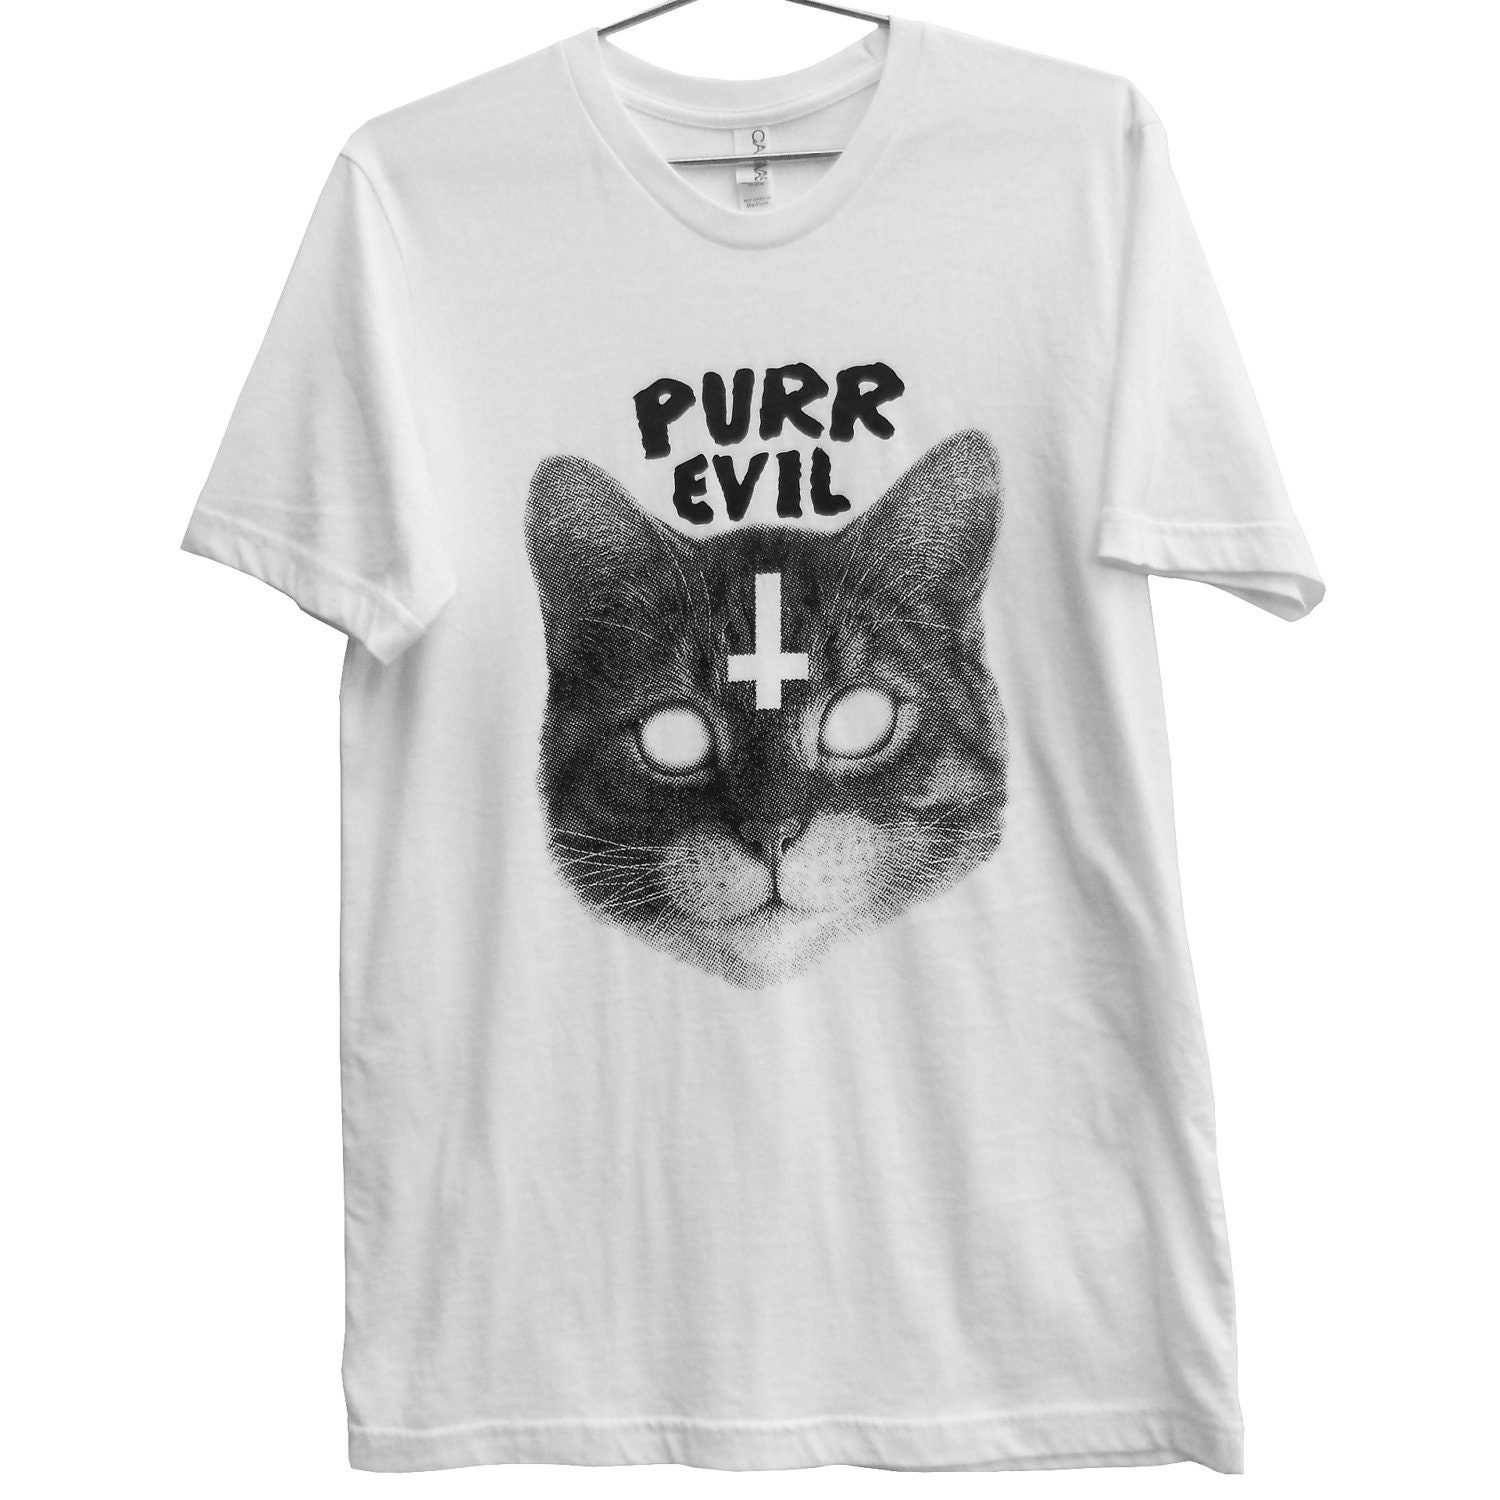 Purr Evil Cat T-Shirt (ATTN: notate SIZE during checkout)